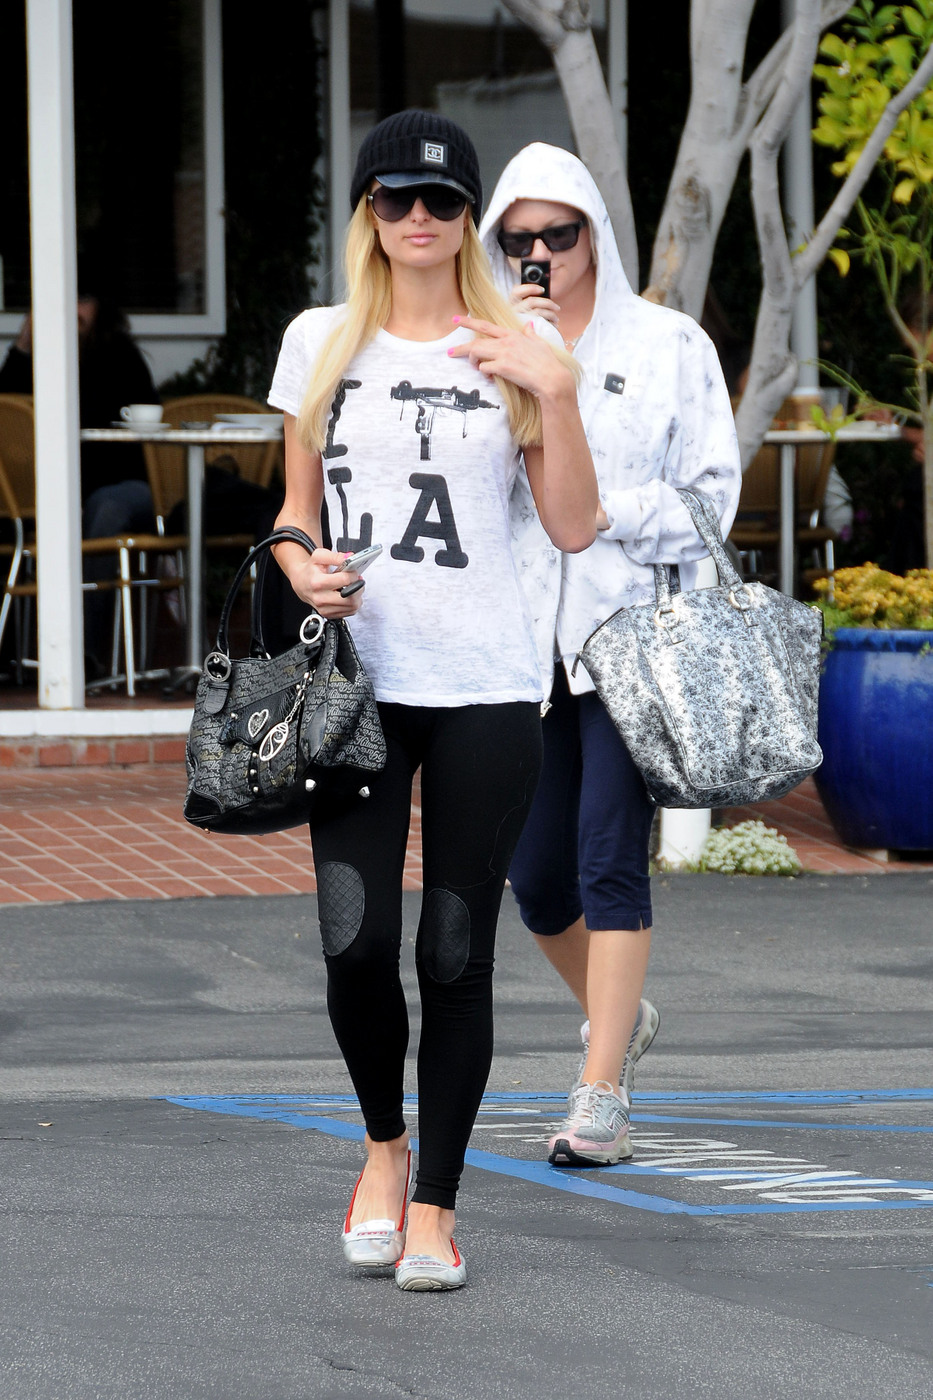 Paris Hilton heads back to her car after shopping at Fred Segal, with her friend recording her on her Flip video camera